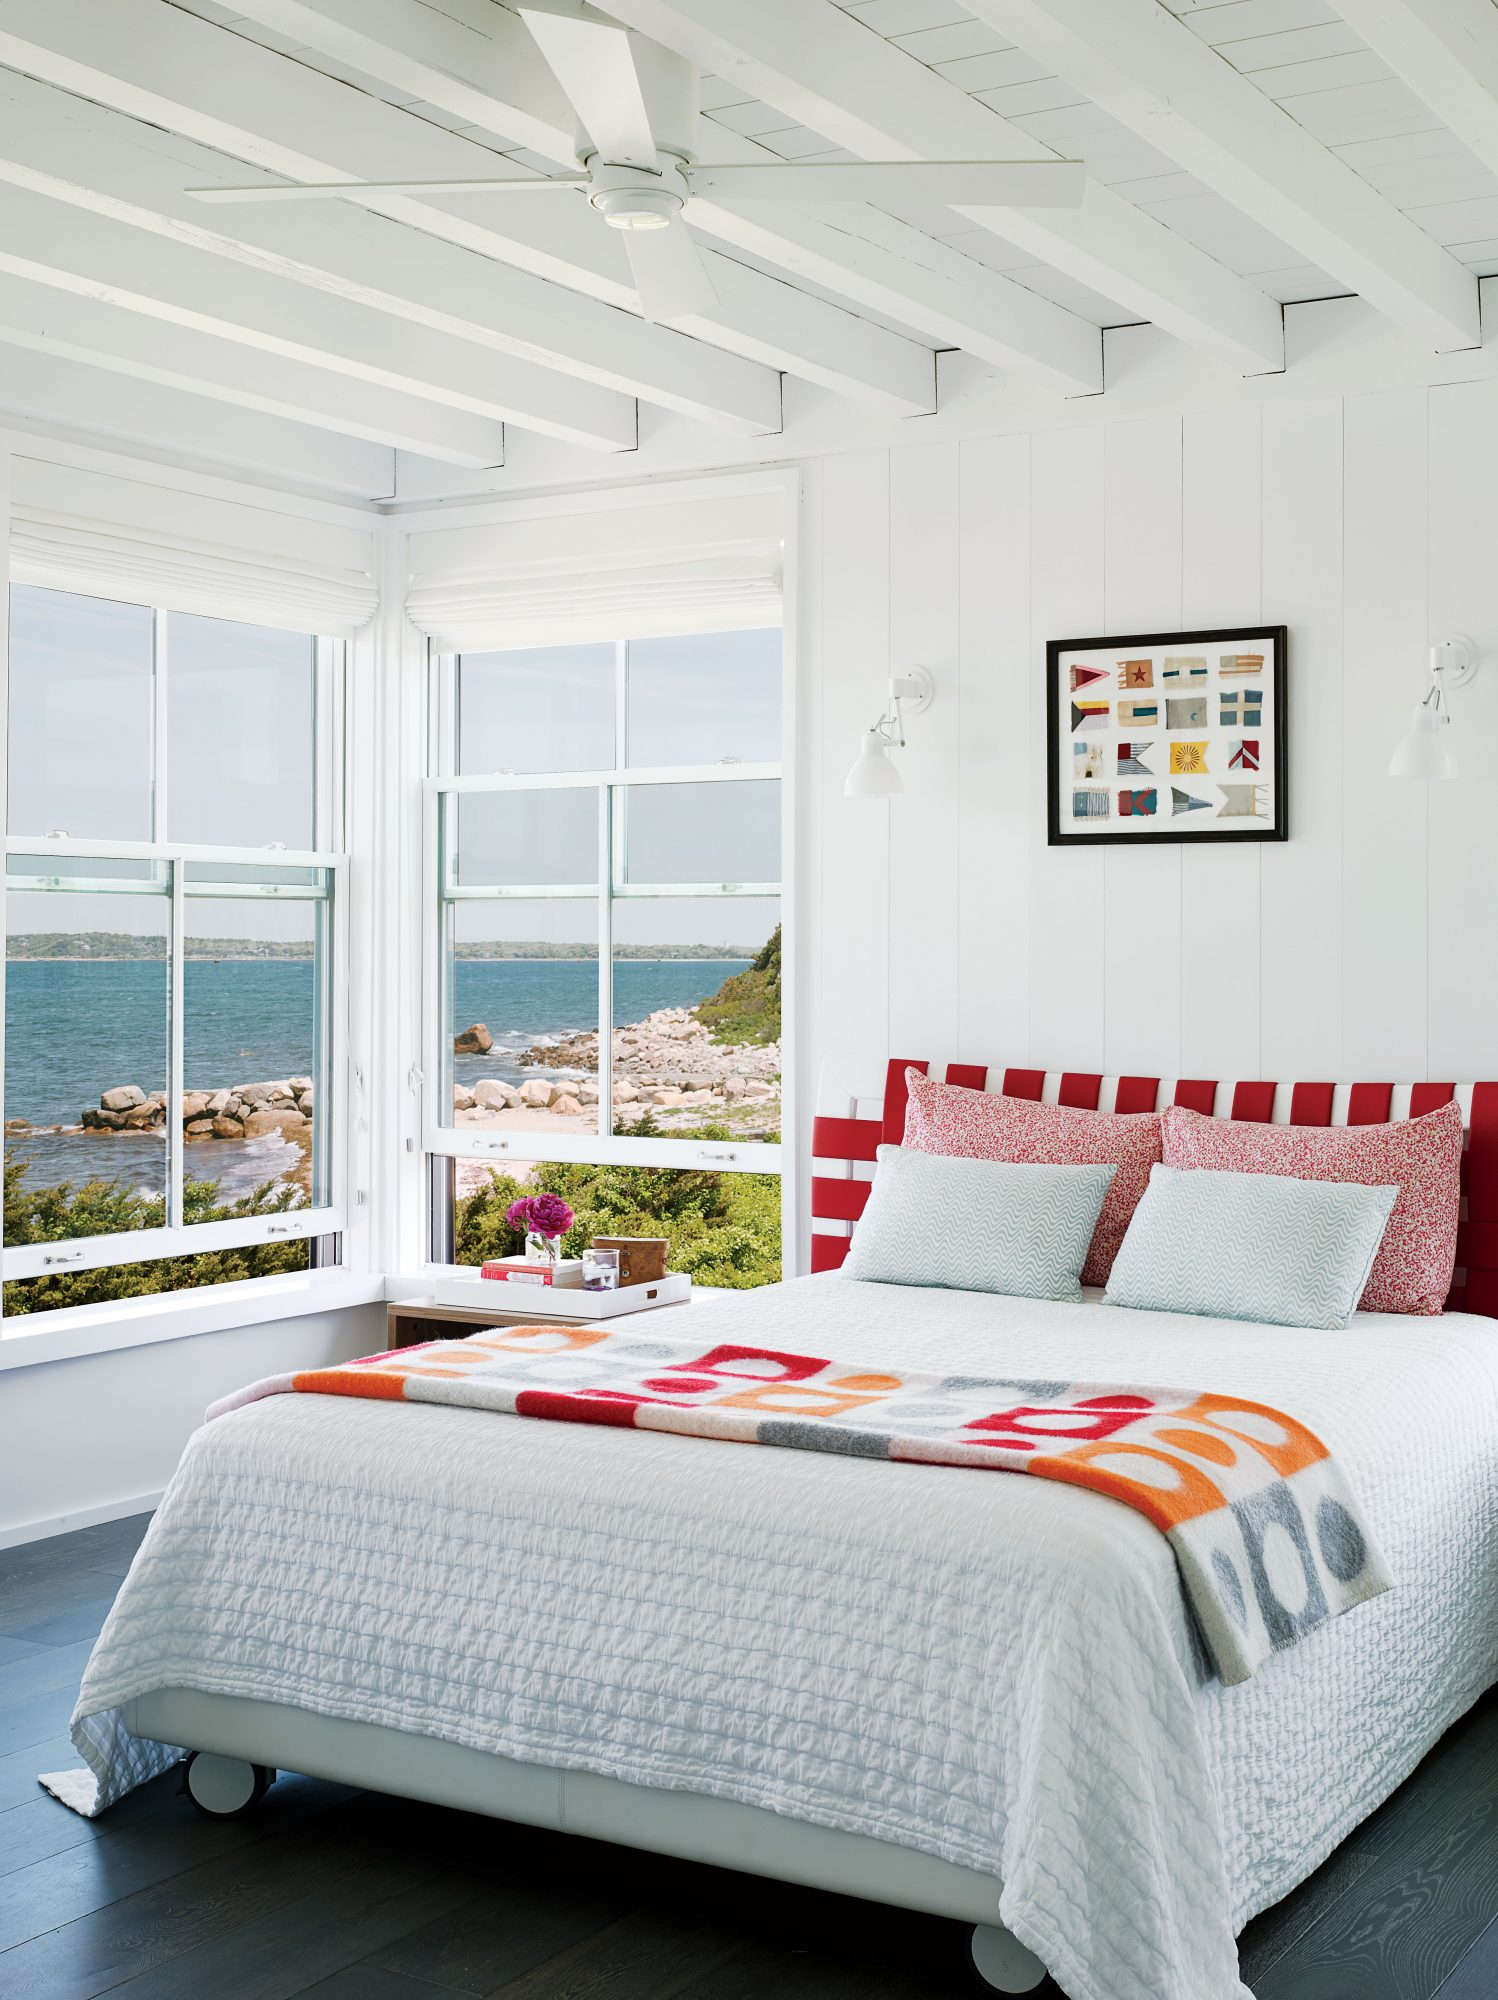 The owners of this Cape Cod cottage made their shoreline view the focus of this bedroom by cladding walls and ceilings in soft white paint that seems to amplify the natural light.